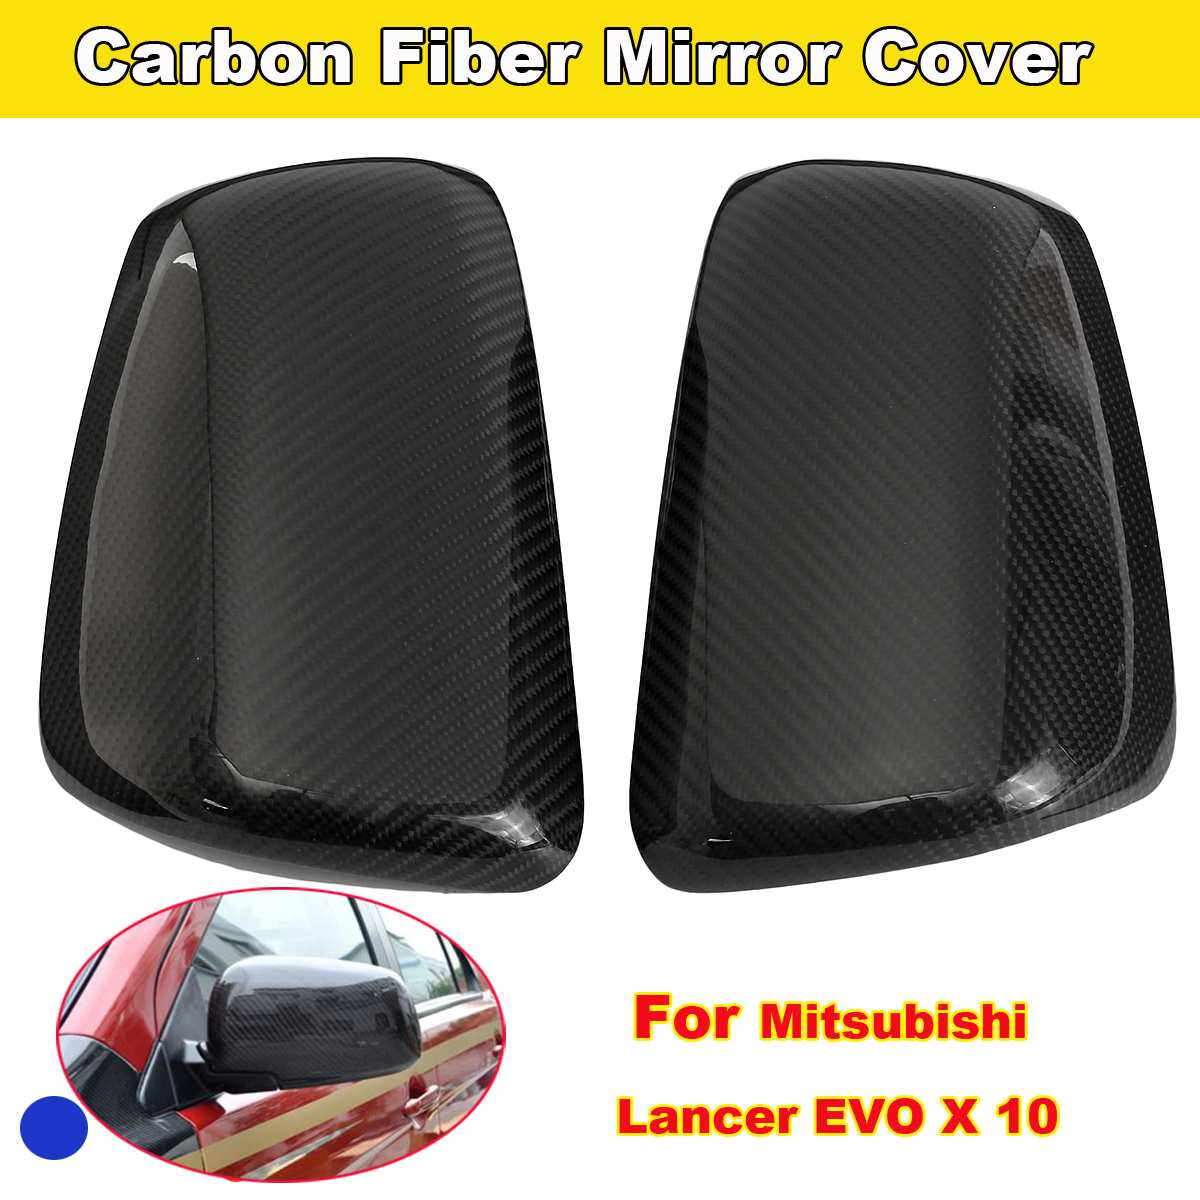 1Pair Mirror Cover Caps Premium Genuine Real Carbon Fiber Mirror Side Wing Cover Caps Replacement For Mitsubishi Lancer EVO X 101Pair Mirror Cover Caps Premium Genuine Real Carbon Fiber Mirror Side Wing Cover Caps Replacement For Mitsubishi Lancer EVO X 10